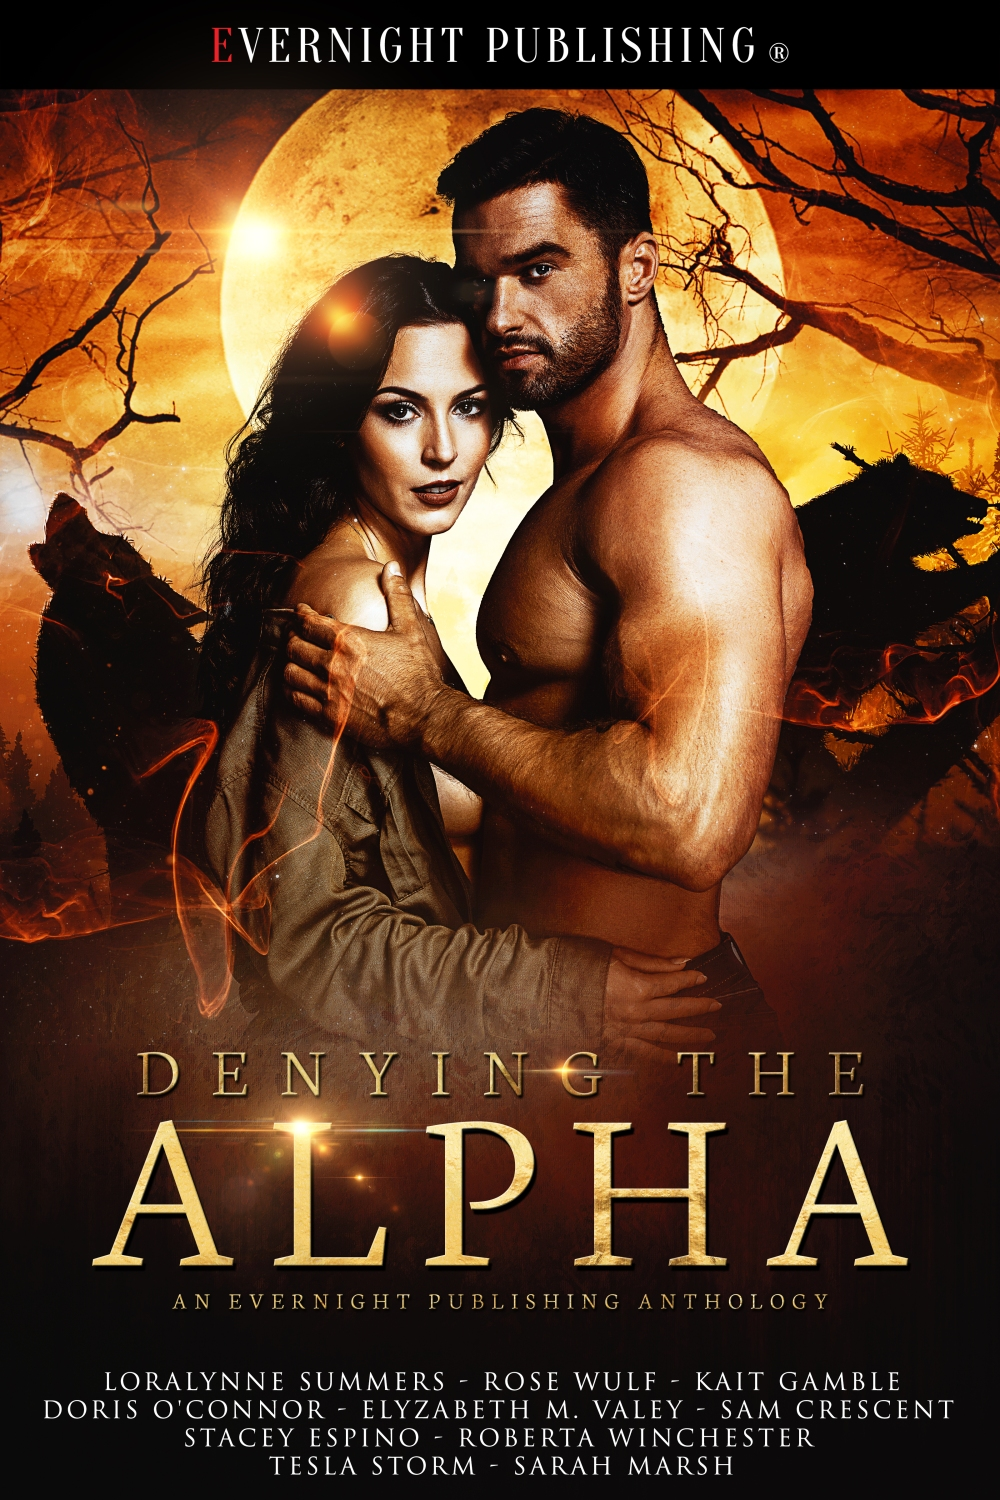 denying the alpha antho-MF-eBook-complete.jpg